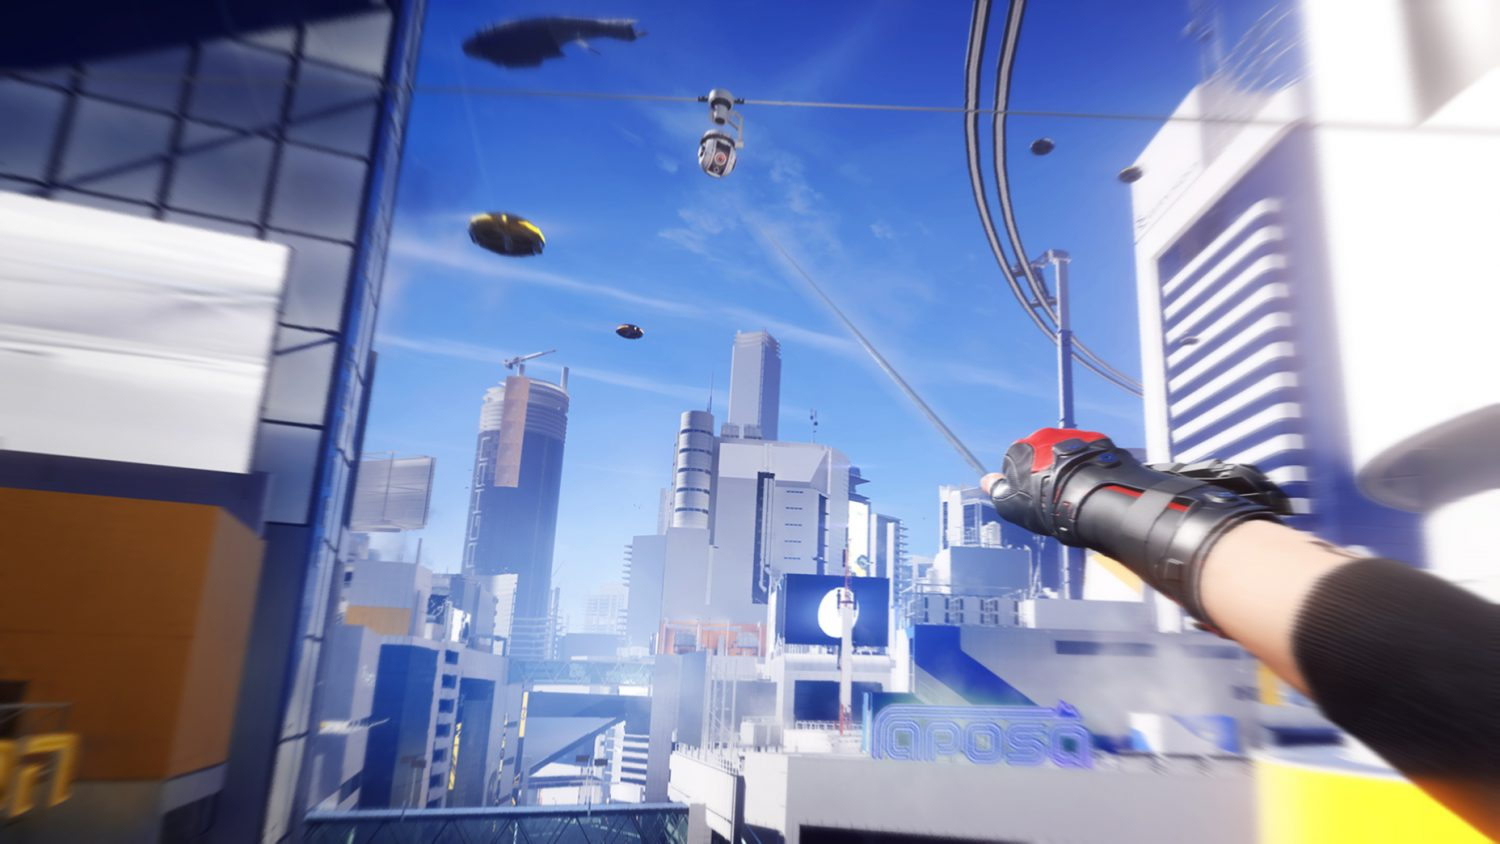 Mirror's Edge Catalyst gamepay 4